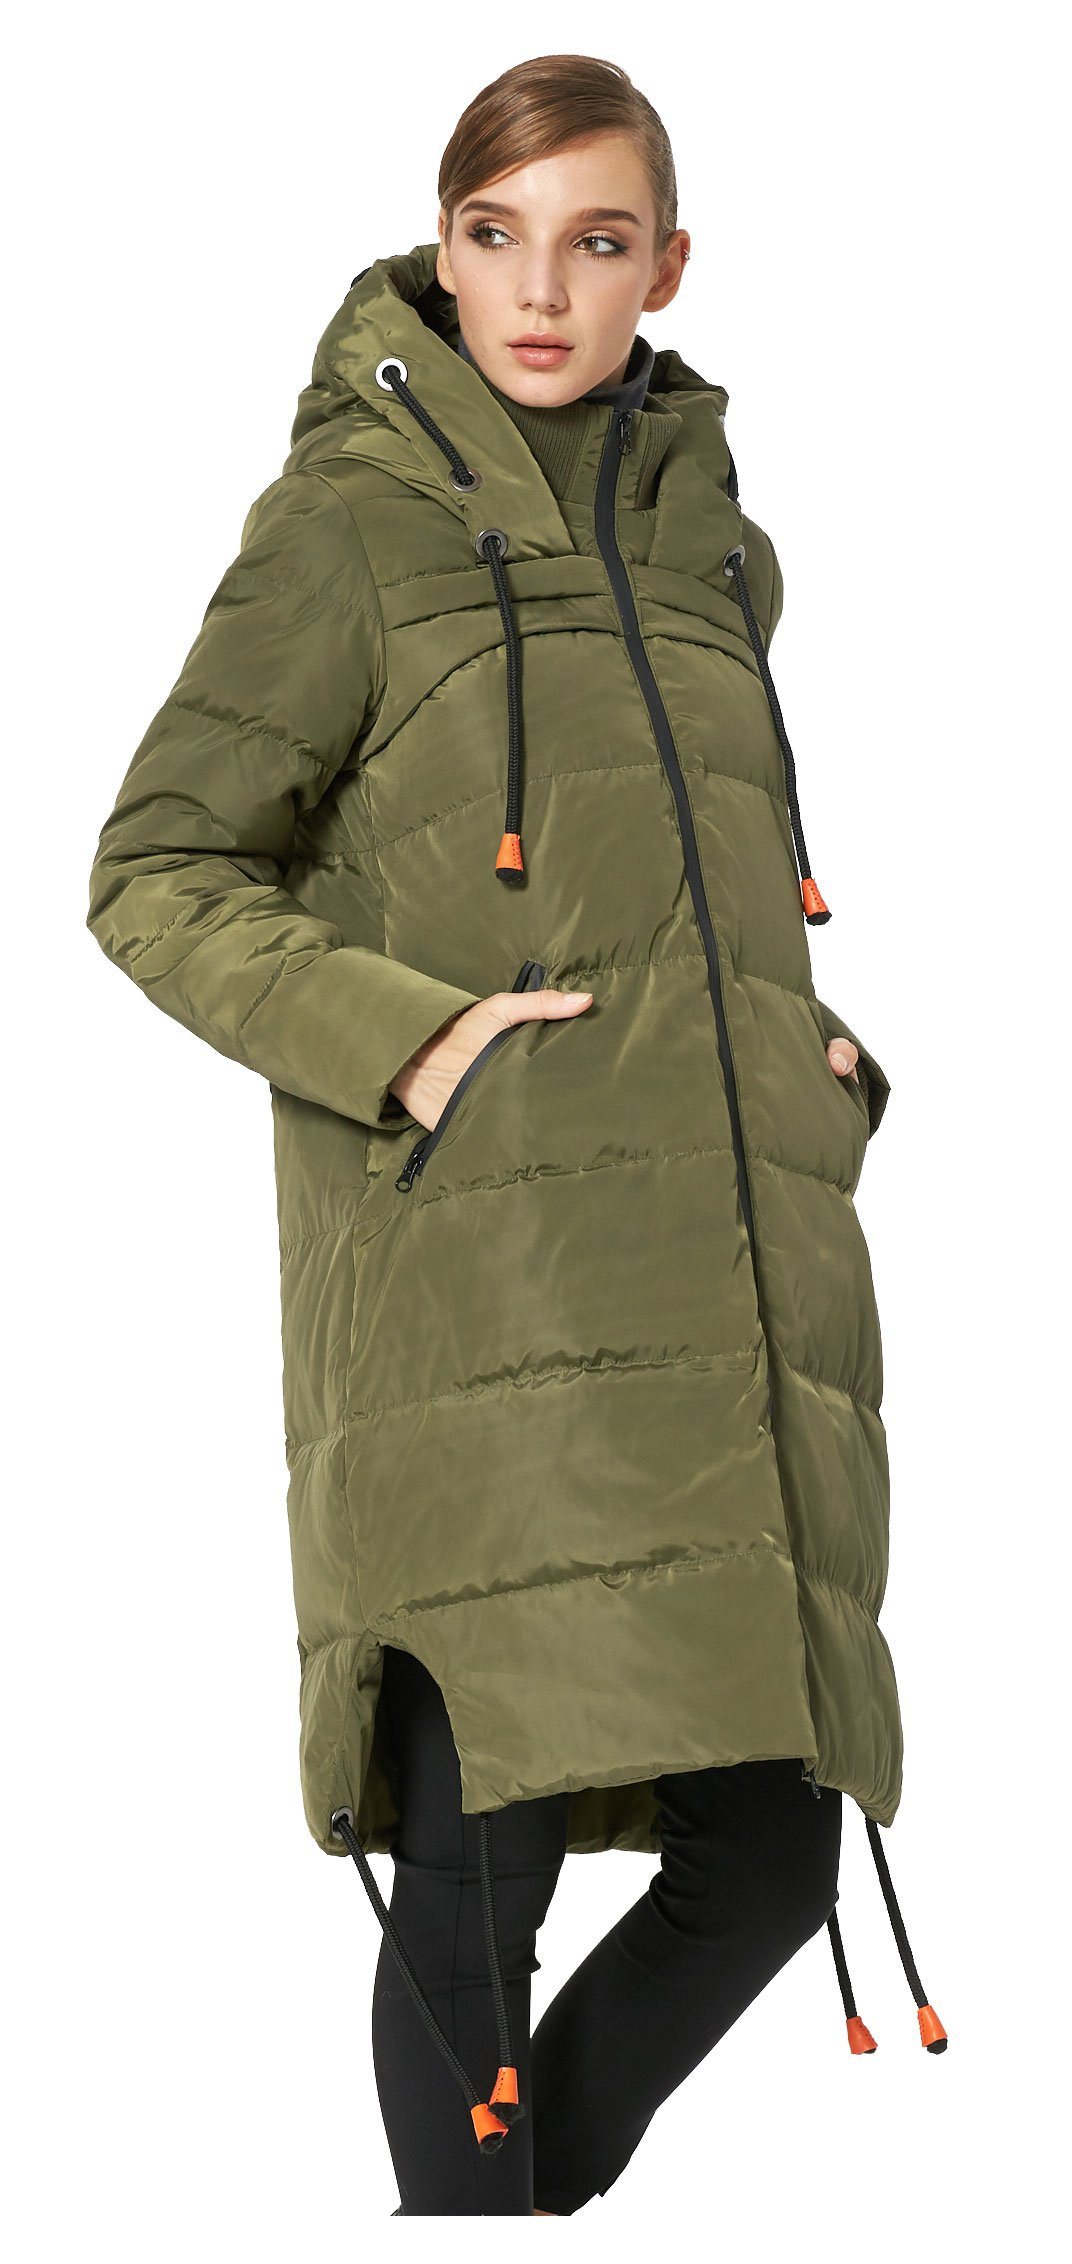 Orolay Women's Thickened Contrast Color Drawstring Down Jacket Hooded ArmyGreen S by Orolay (Image #5)